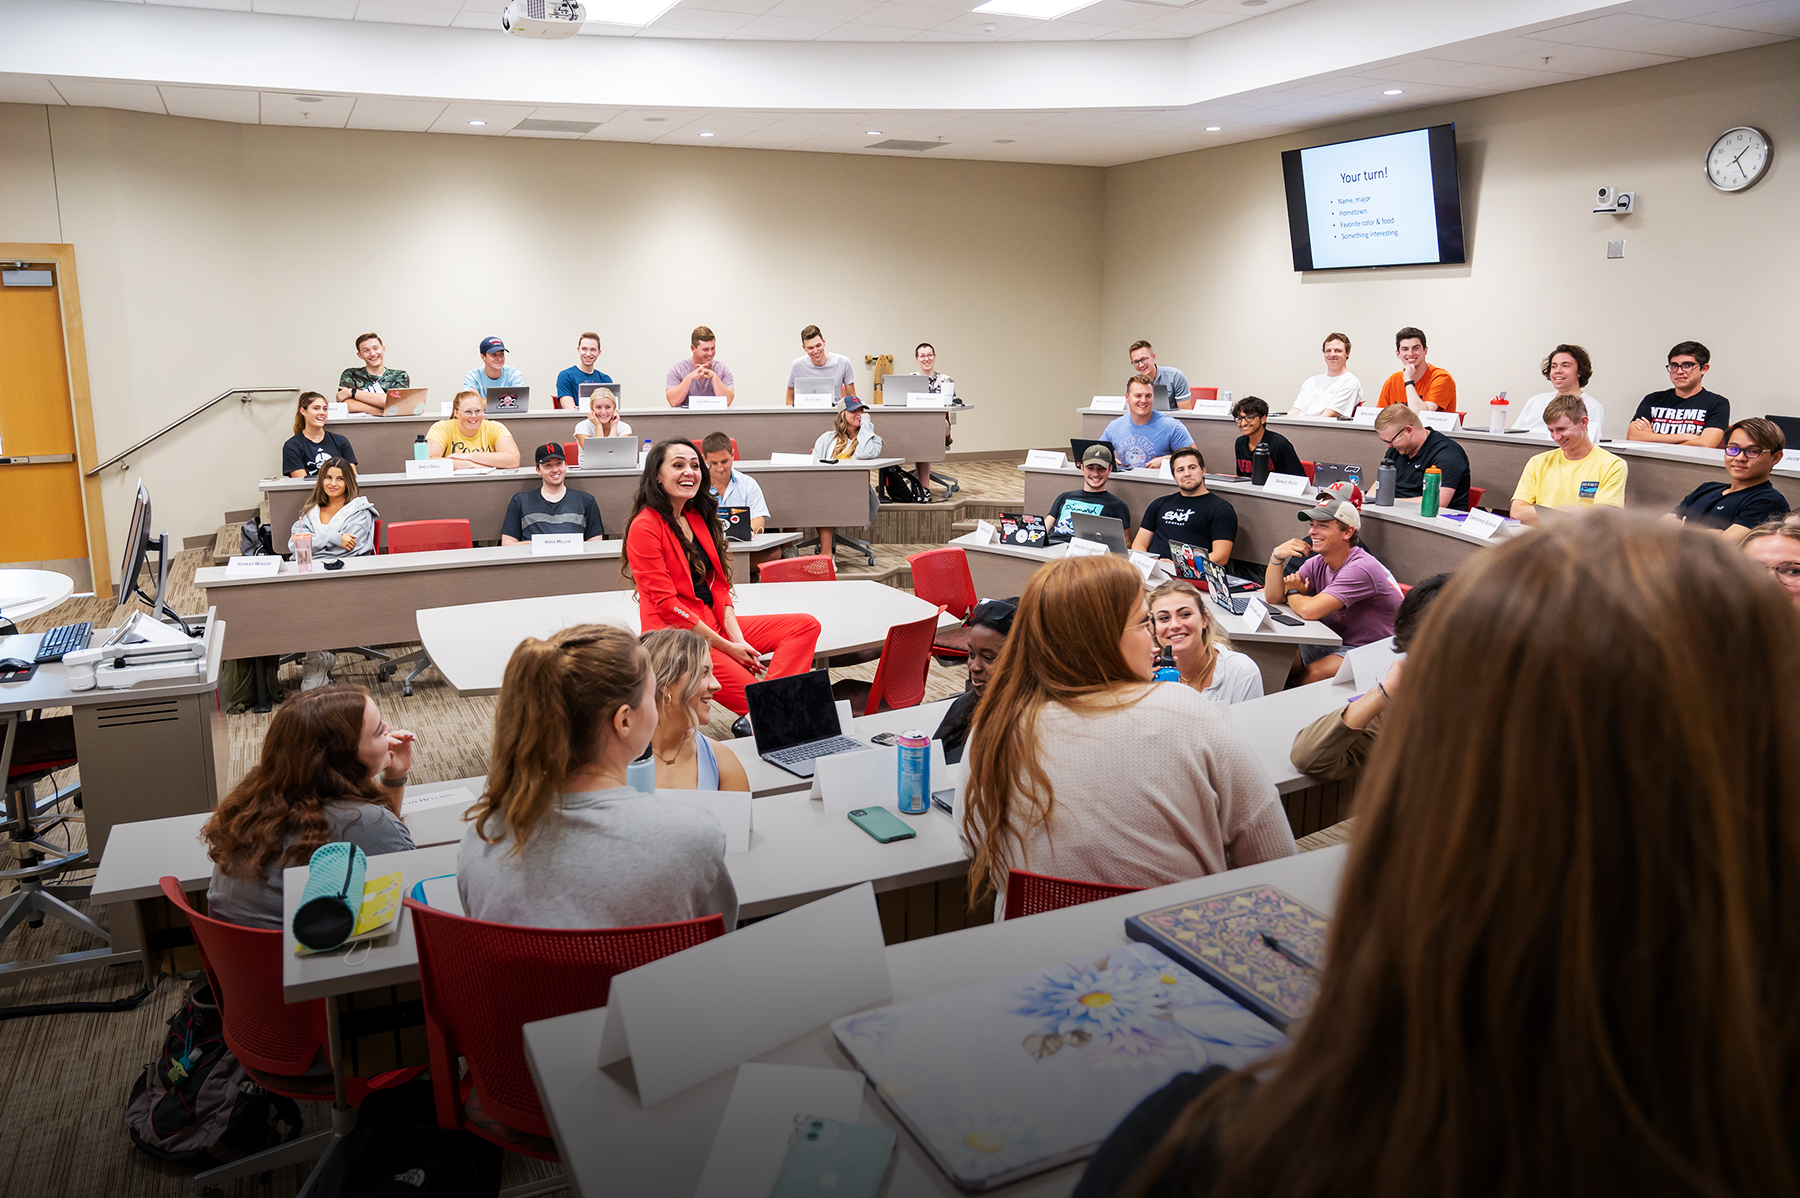 Pinar Runnalls talking to her students in the classroom